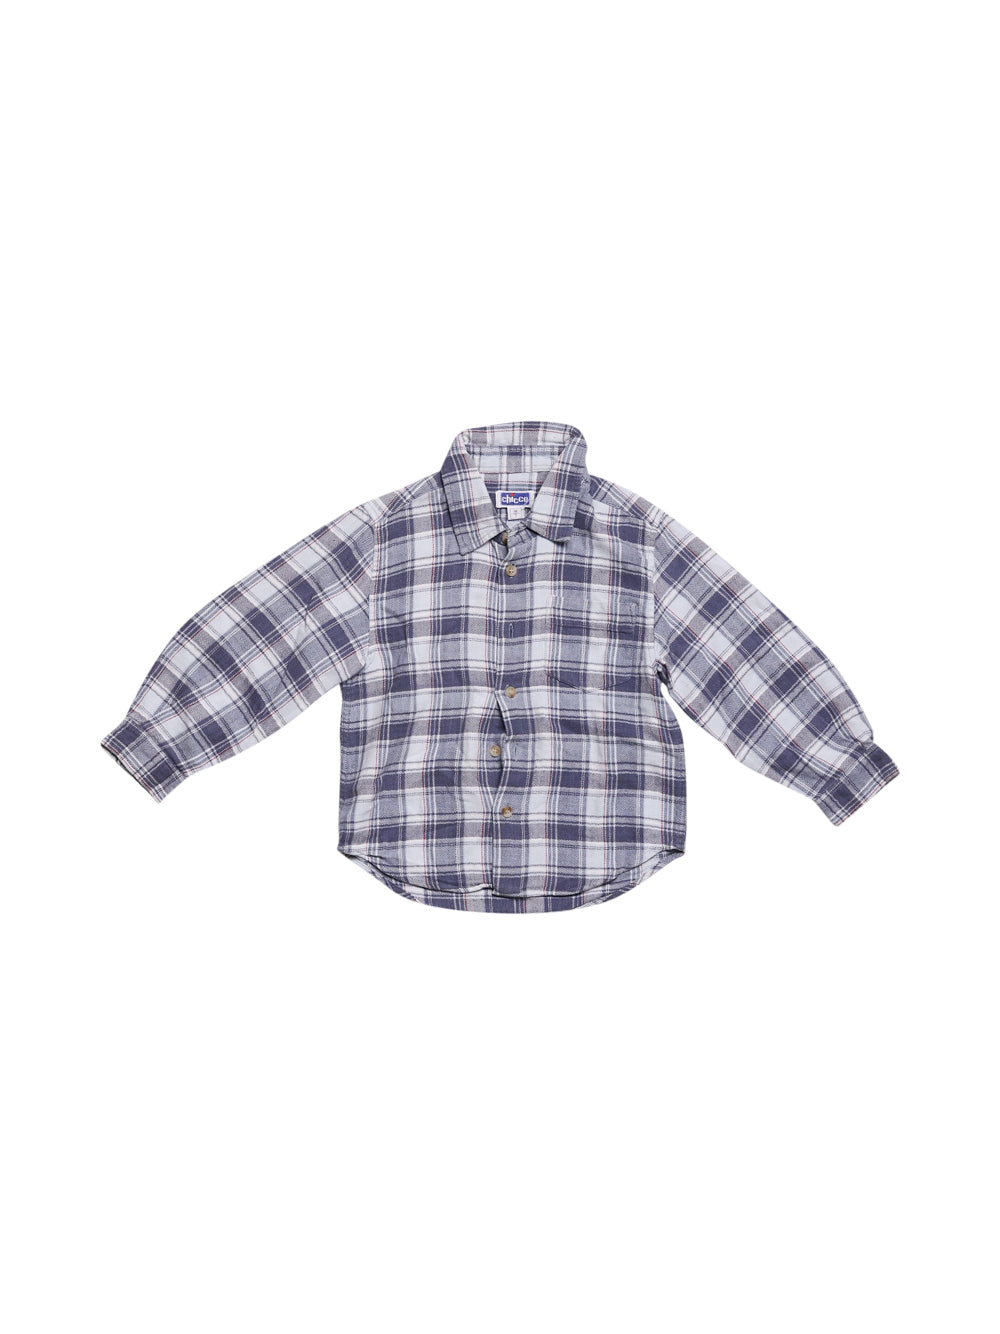 Front photo of Preloved Chicco Blue Boy's shirt - size 2-3 yrs